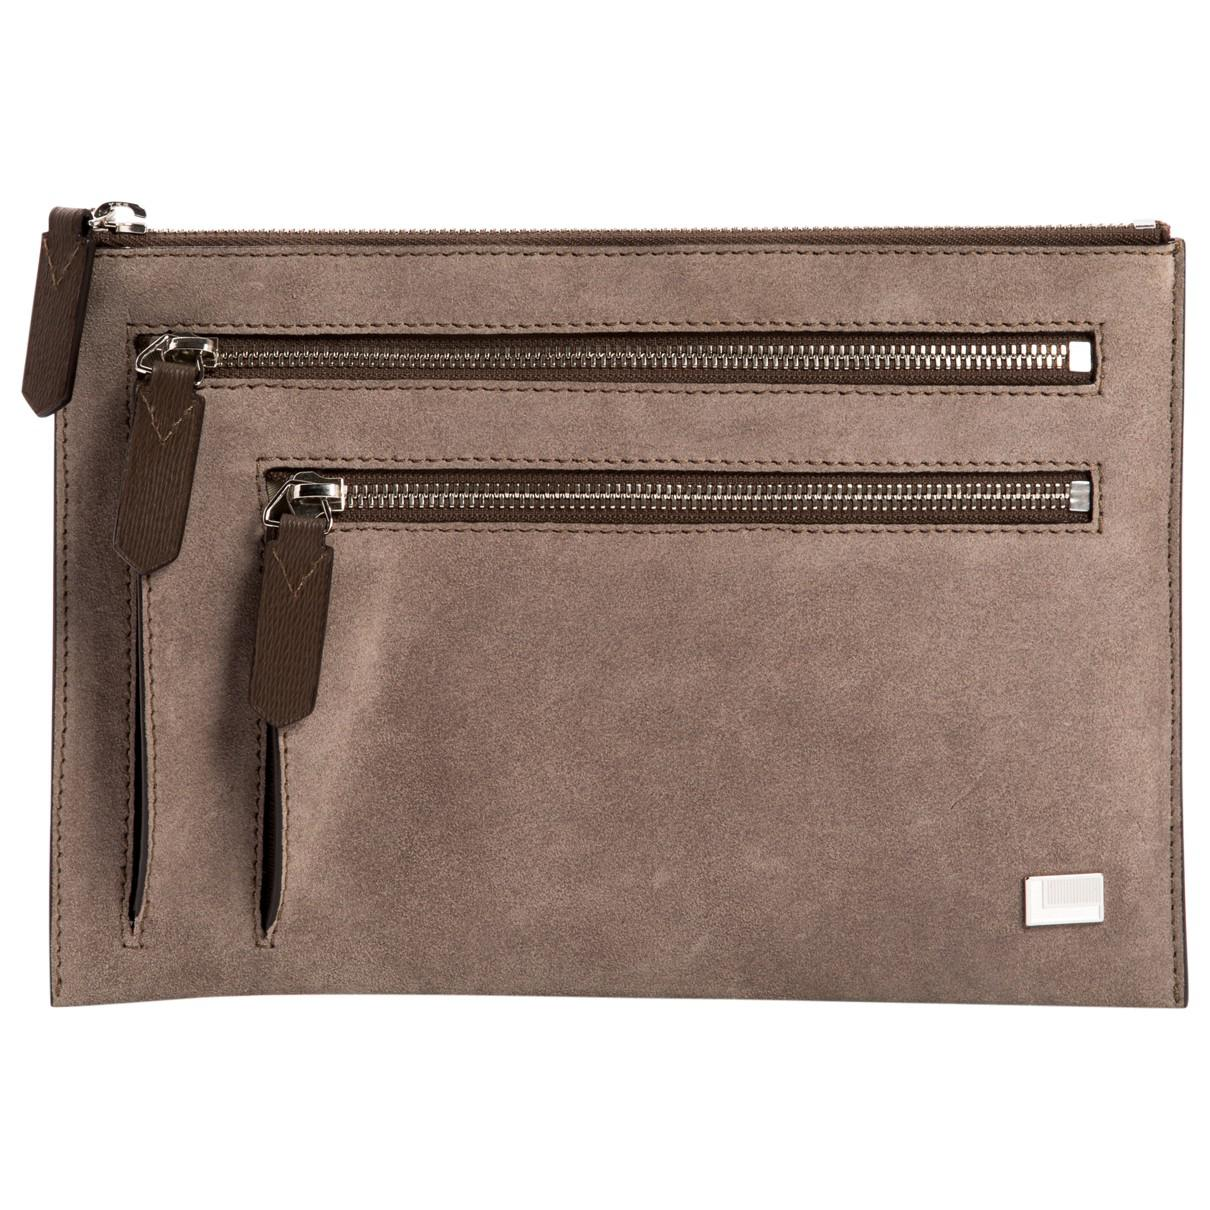 Lancel Pre-owned - Leather clutch bag G7tuV4